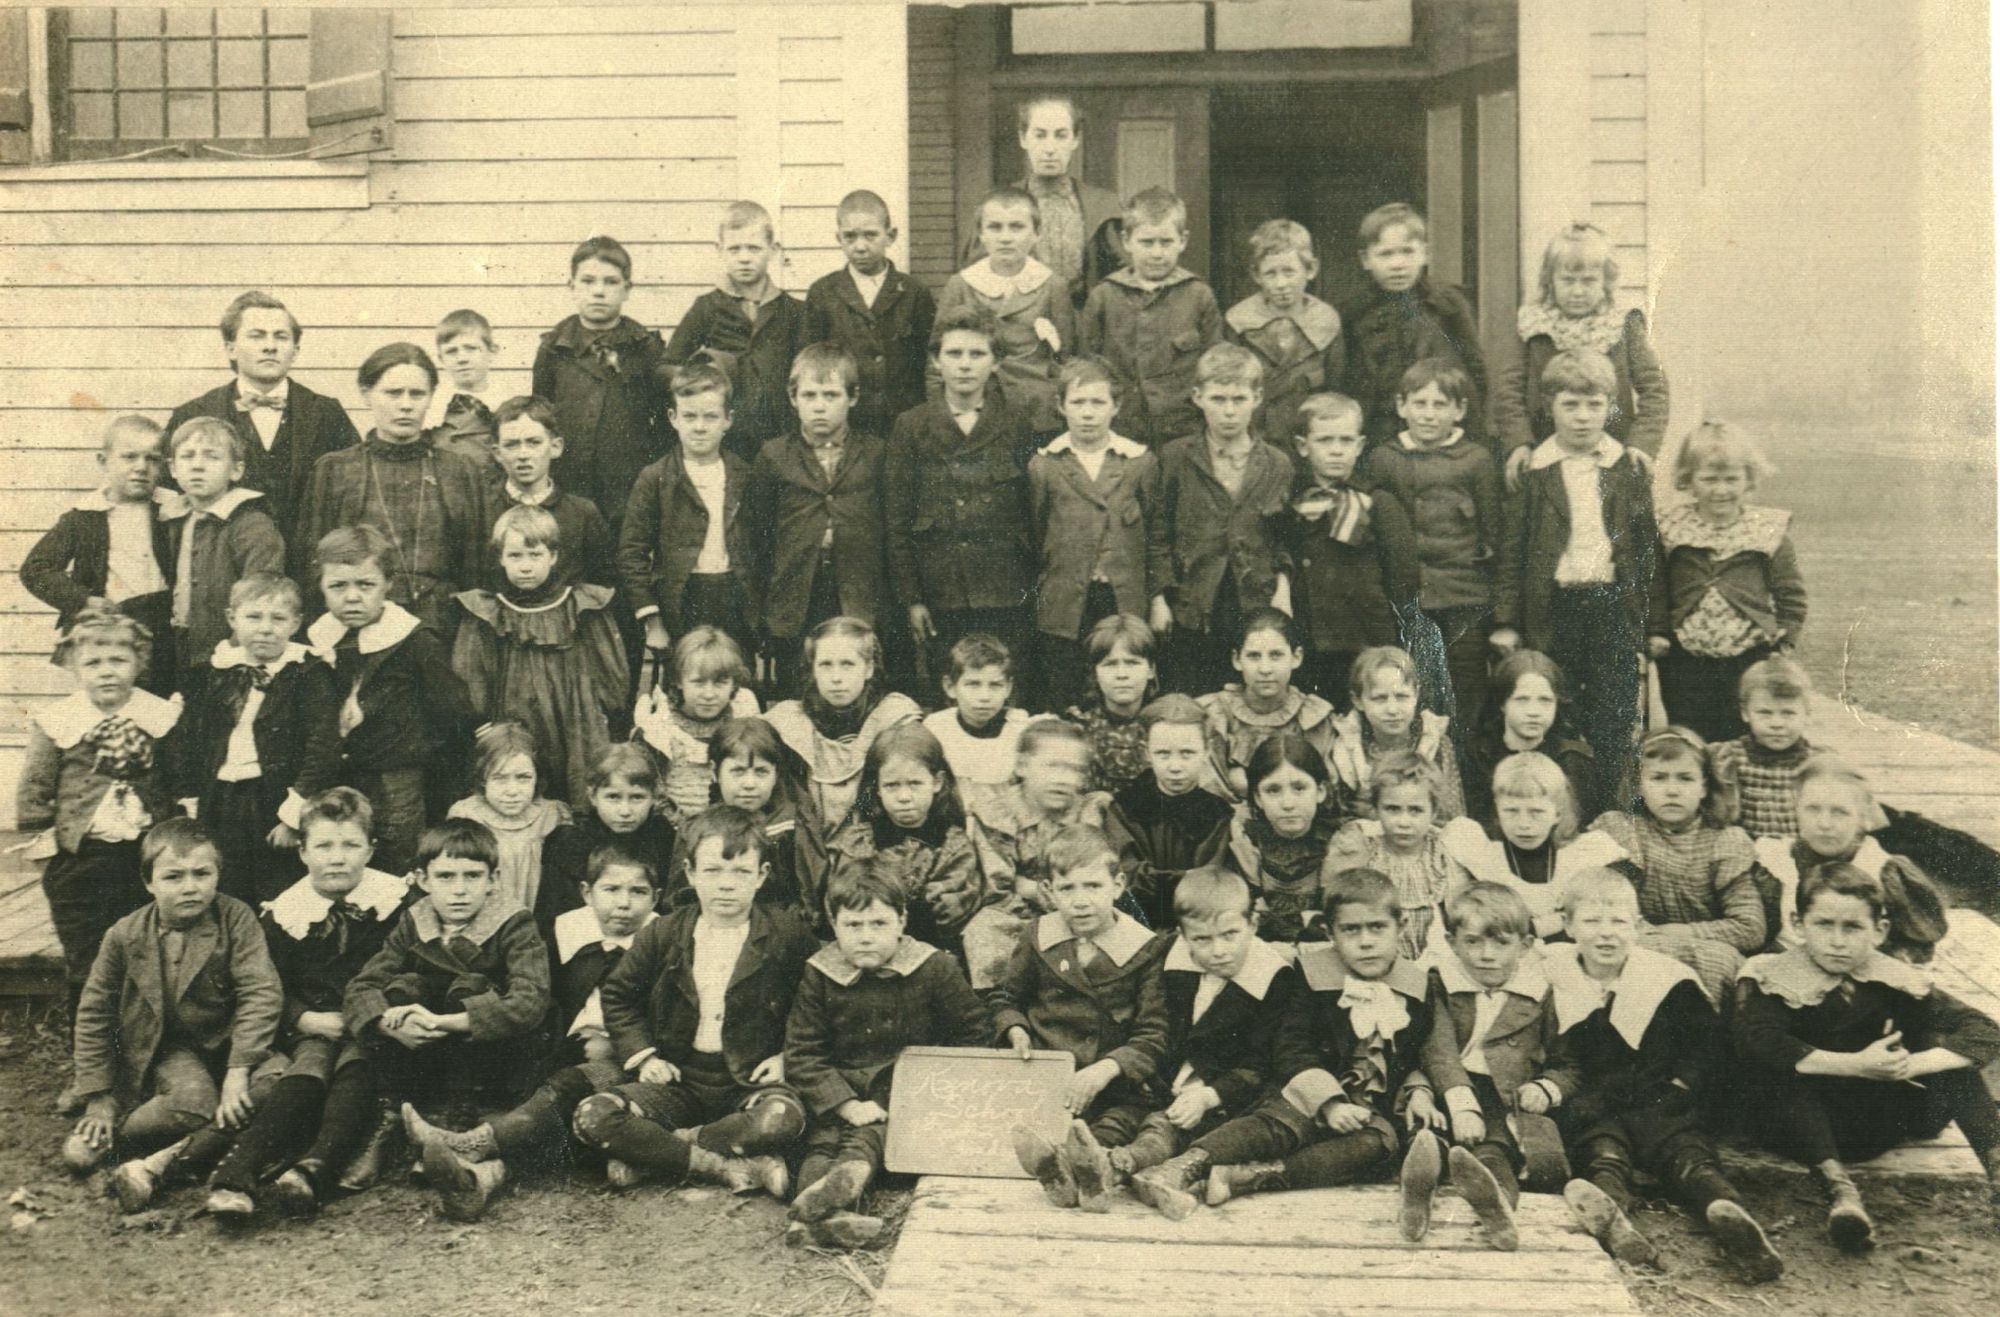 Third Grade Kenova Elementary School class in 1899. The teachers are identified as W. W. Smith and Betty Lambert. Image courtesy of the Ceredo Historical Society Museum.